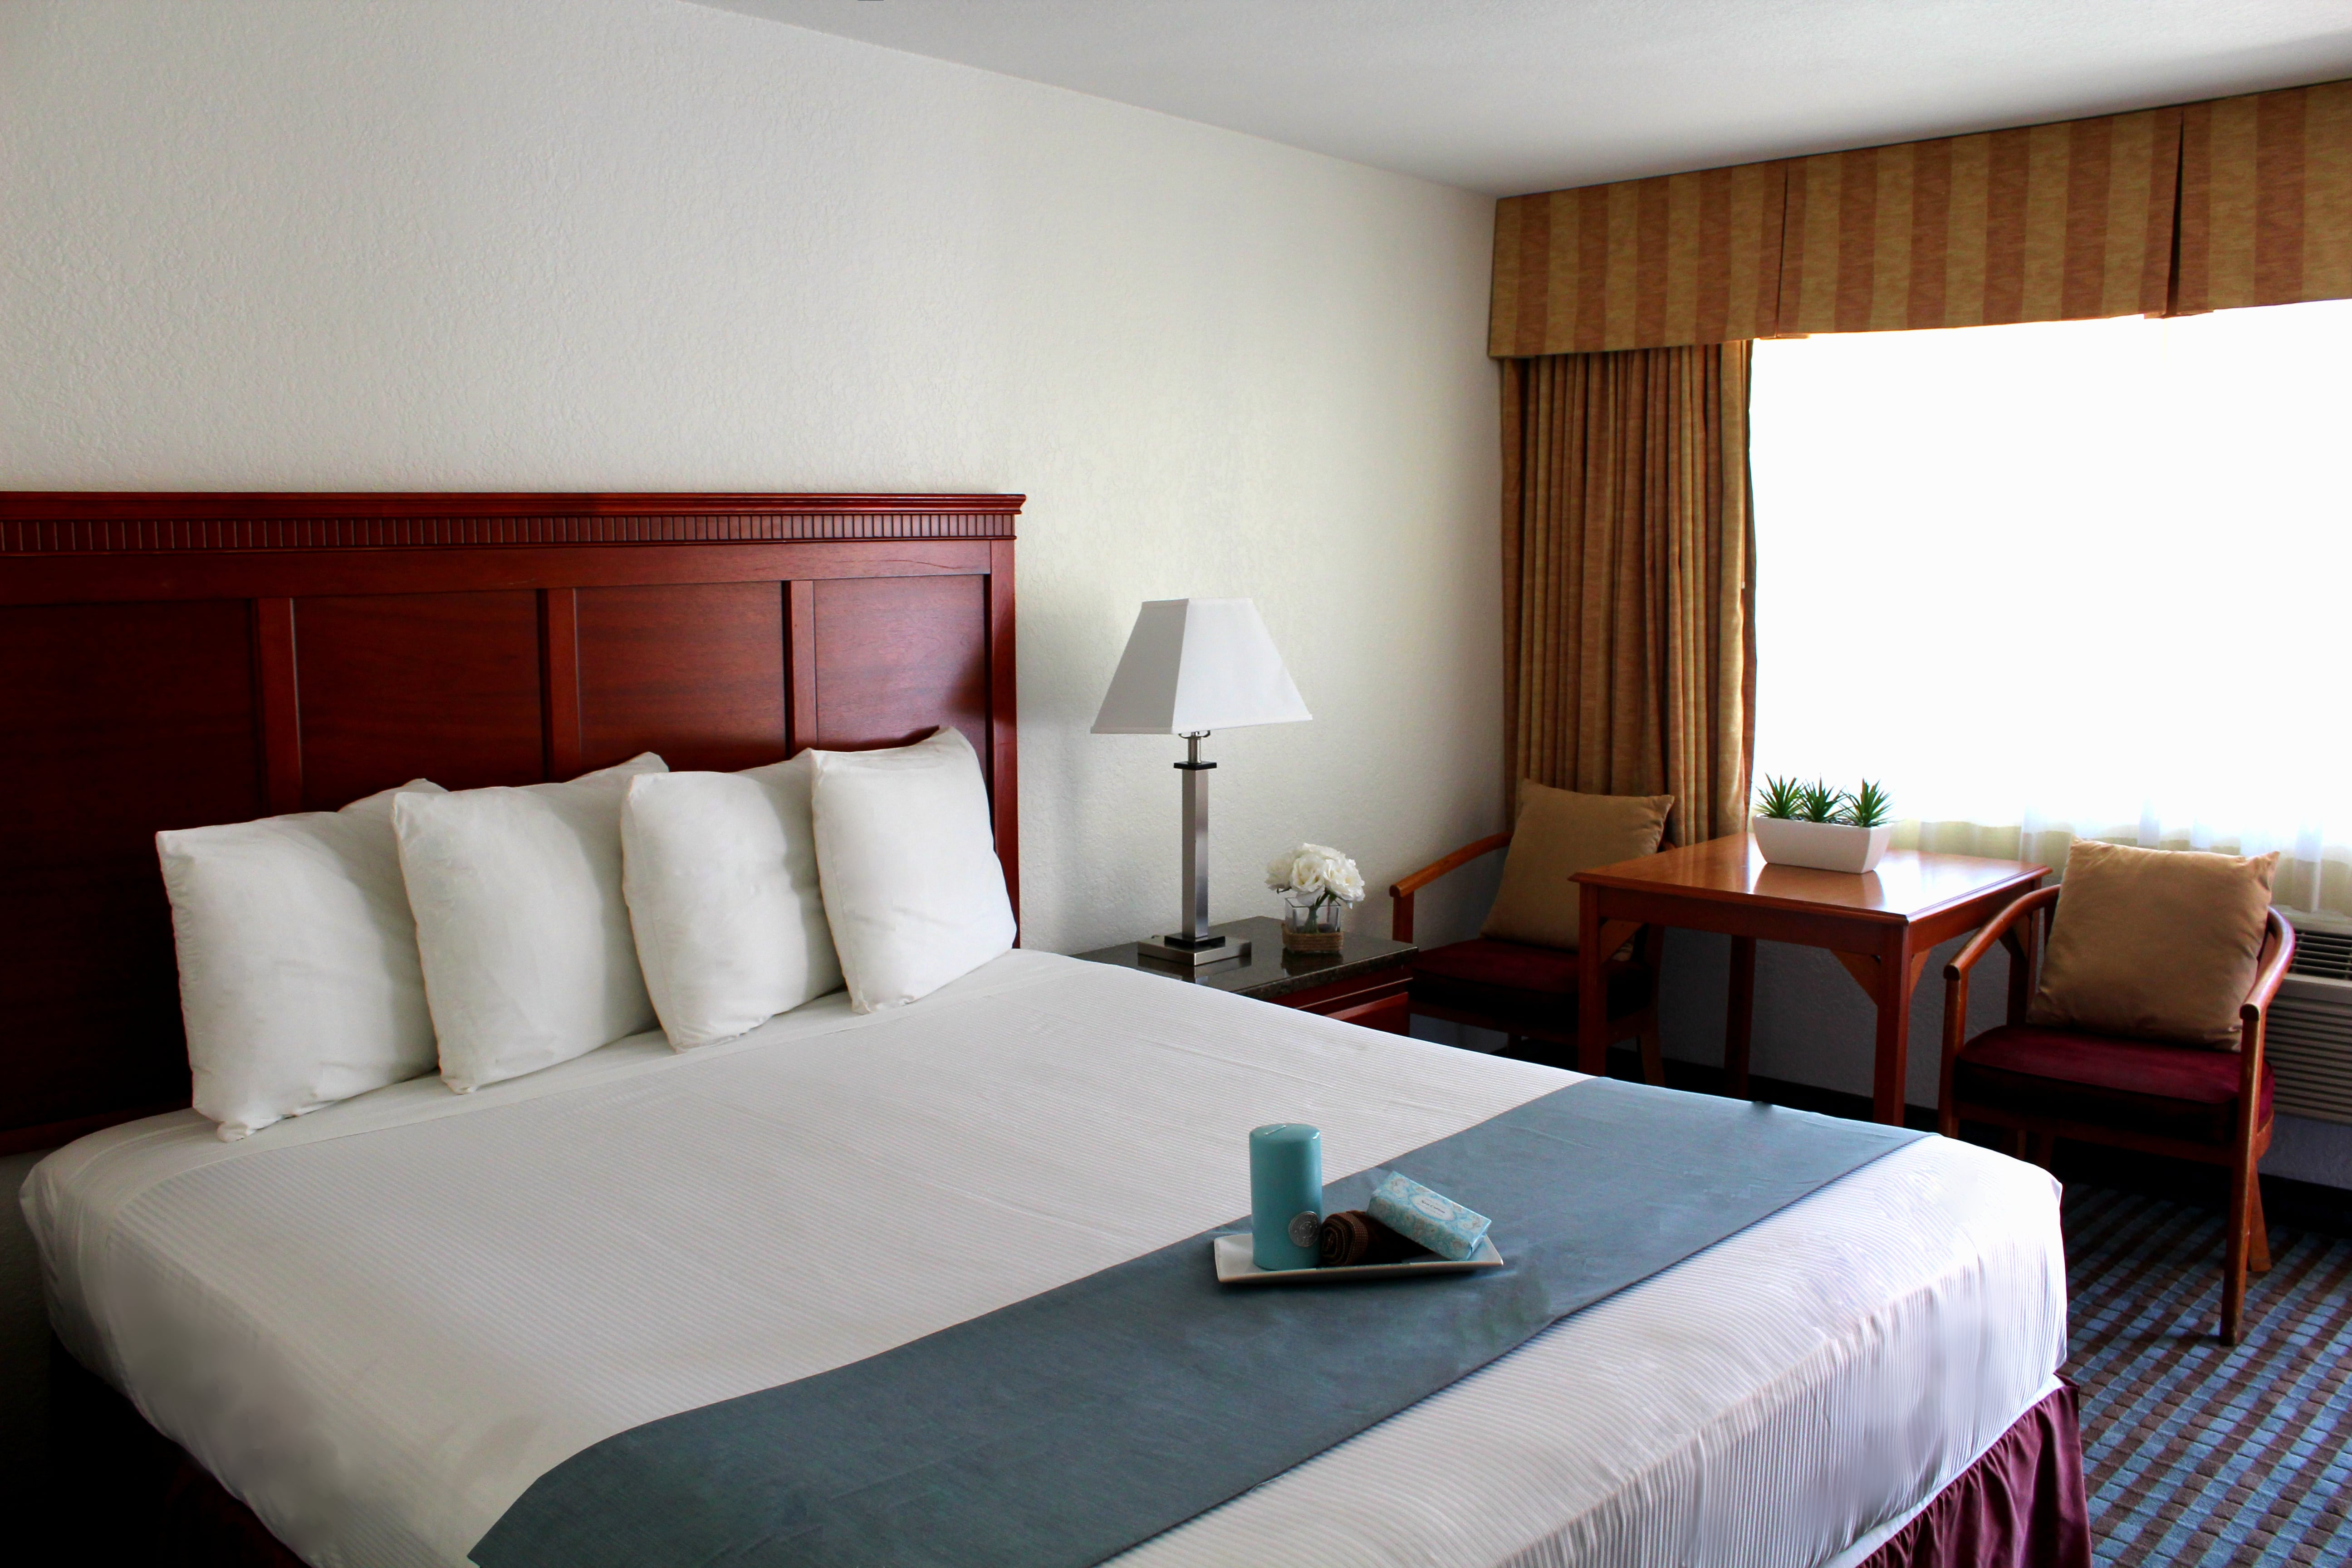 Pacific inn hotel and suites san diego ca hotel hotel - Hotels in san diego with 2 bedroom suites ...